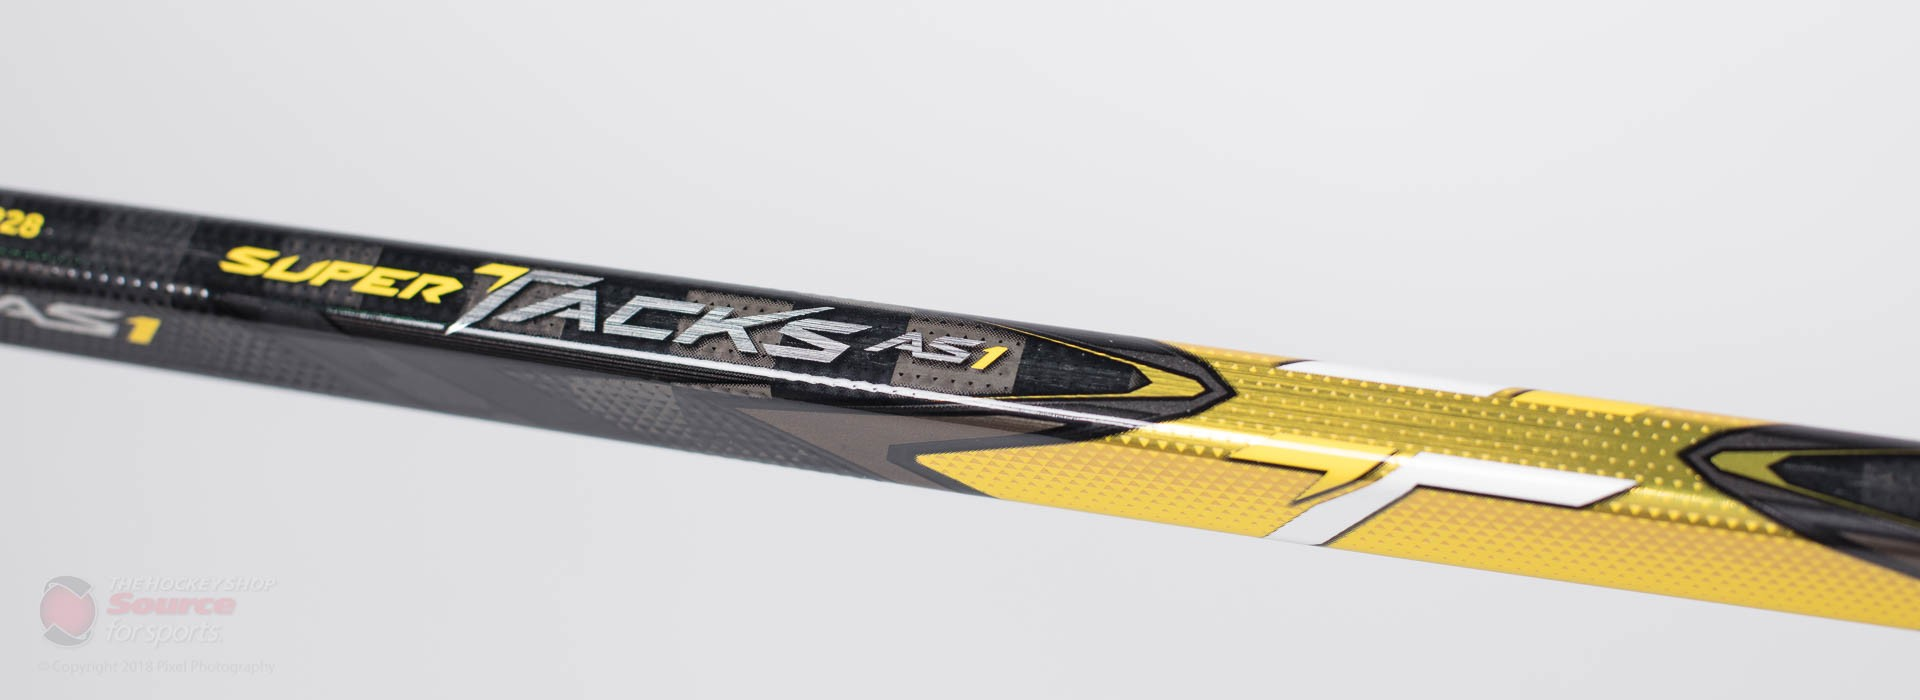 HOKEJKA (HŮL) CCM SUPER TACKS AS1 SR GRIP 4c0e311738